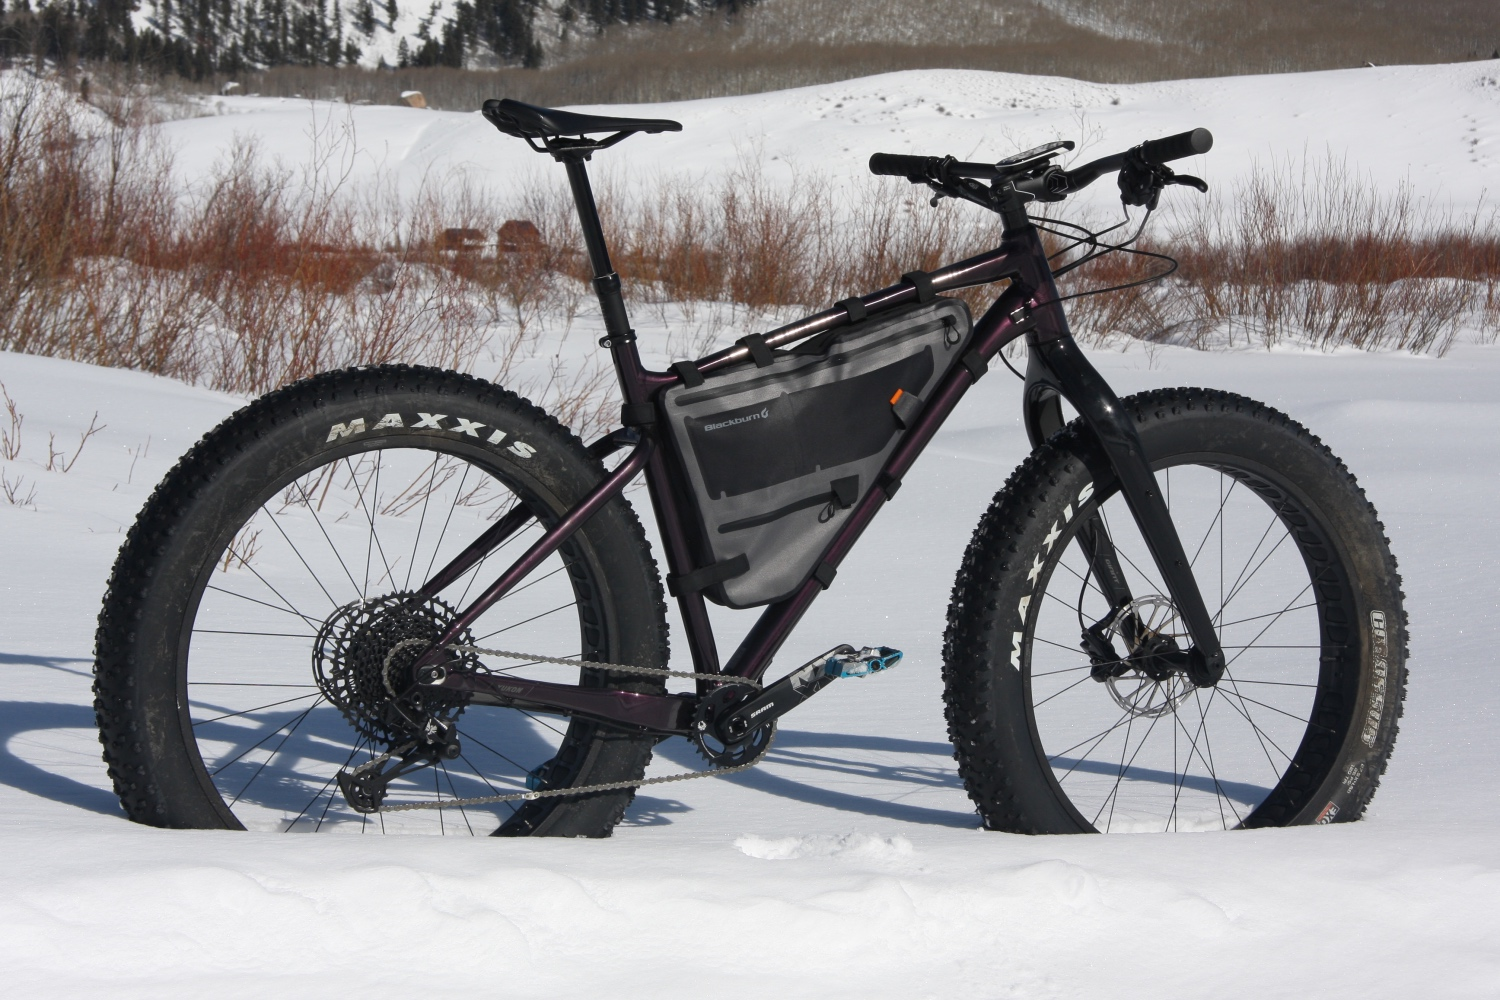 Giant's budget-friendly fat bike has everything you need for a little wintertime fun without breaking the bank. Photo by Jason Sumner